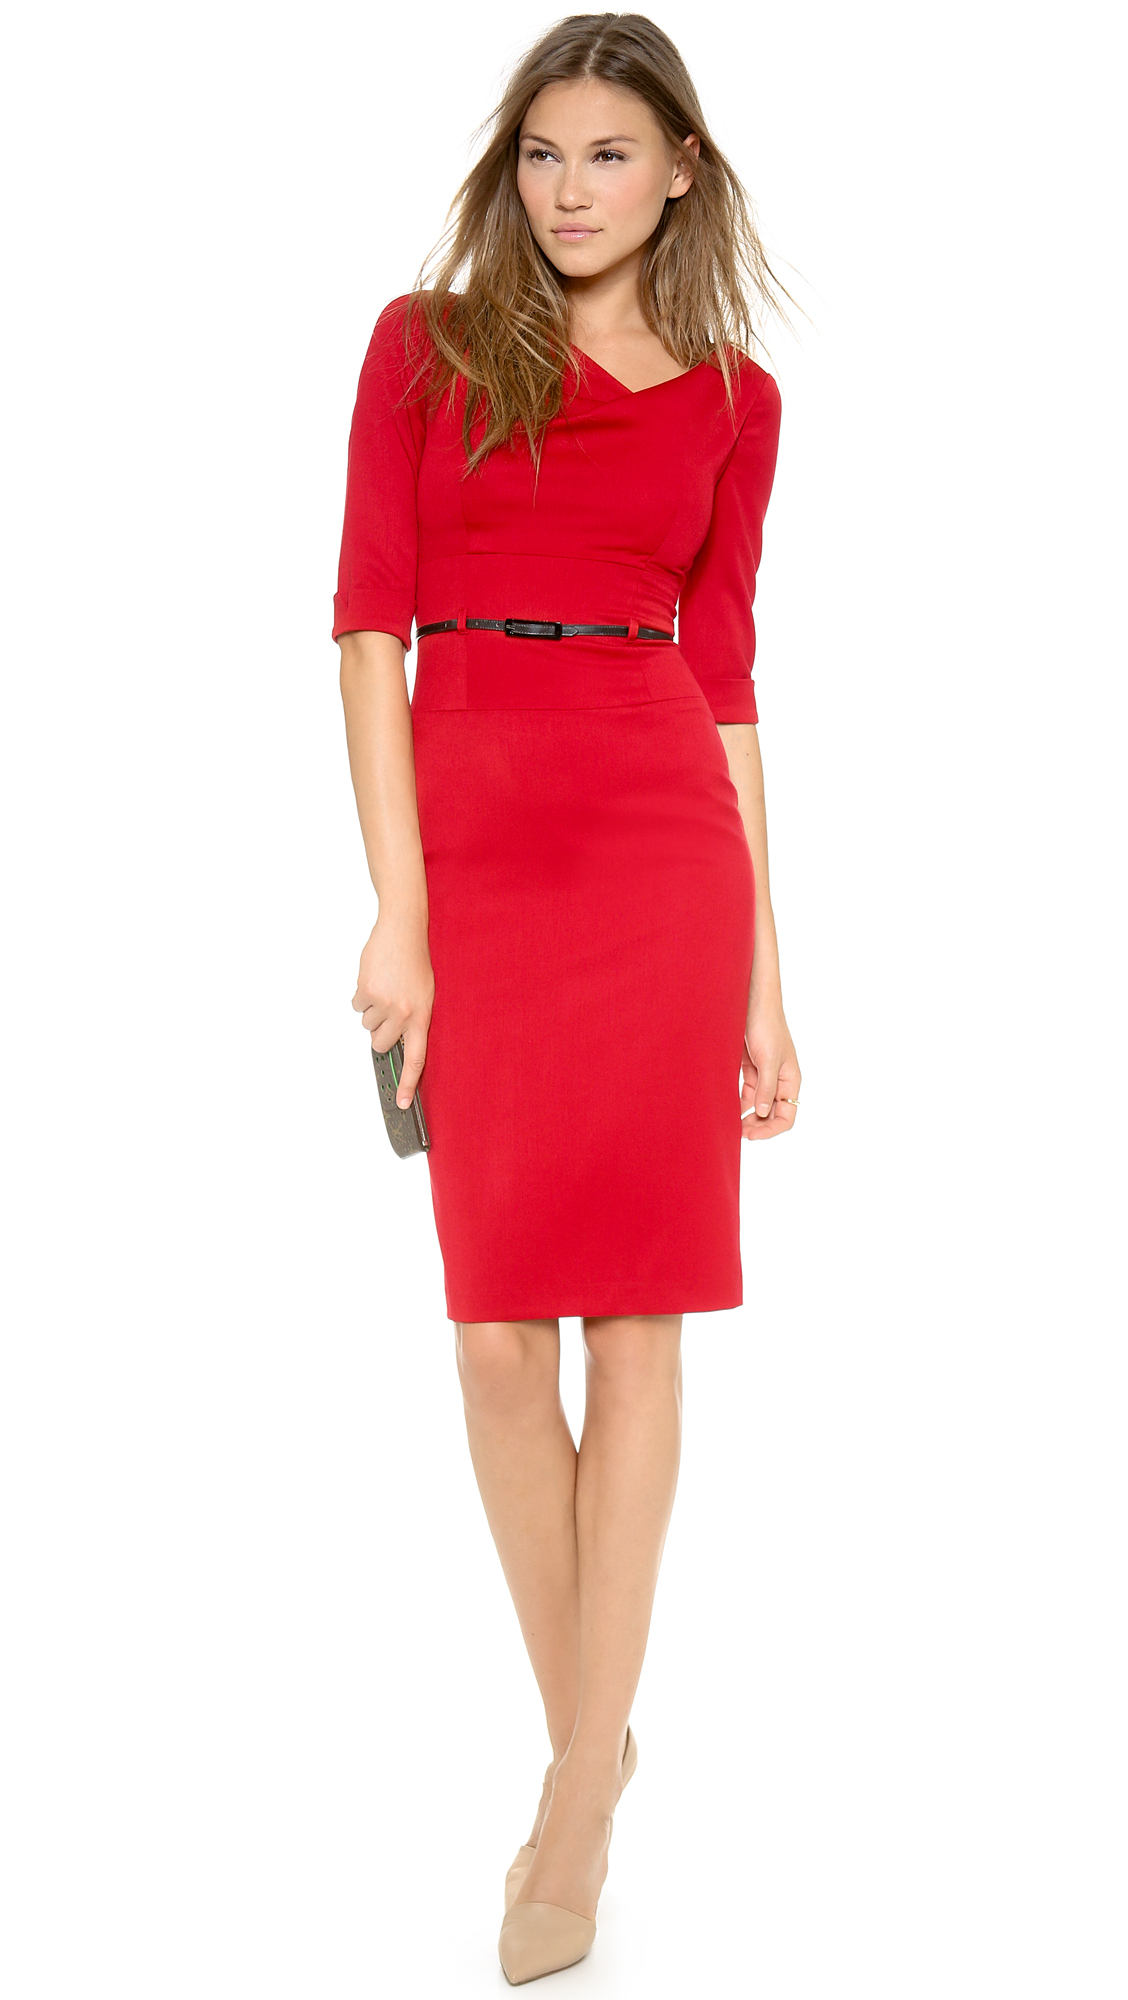 Black Halo 3/4 Sleeve Jackie O Dress - Eclipse in Red | Lyst